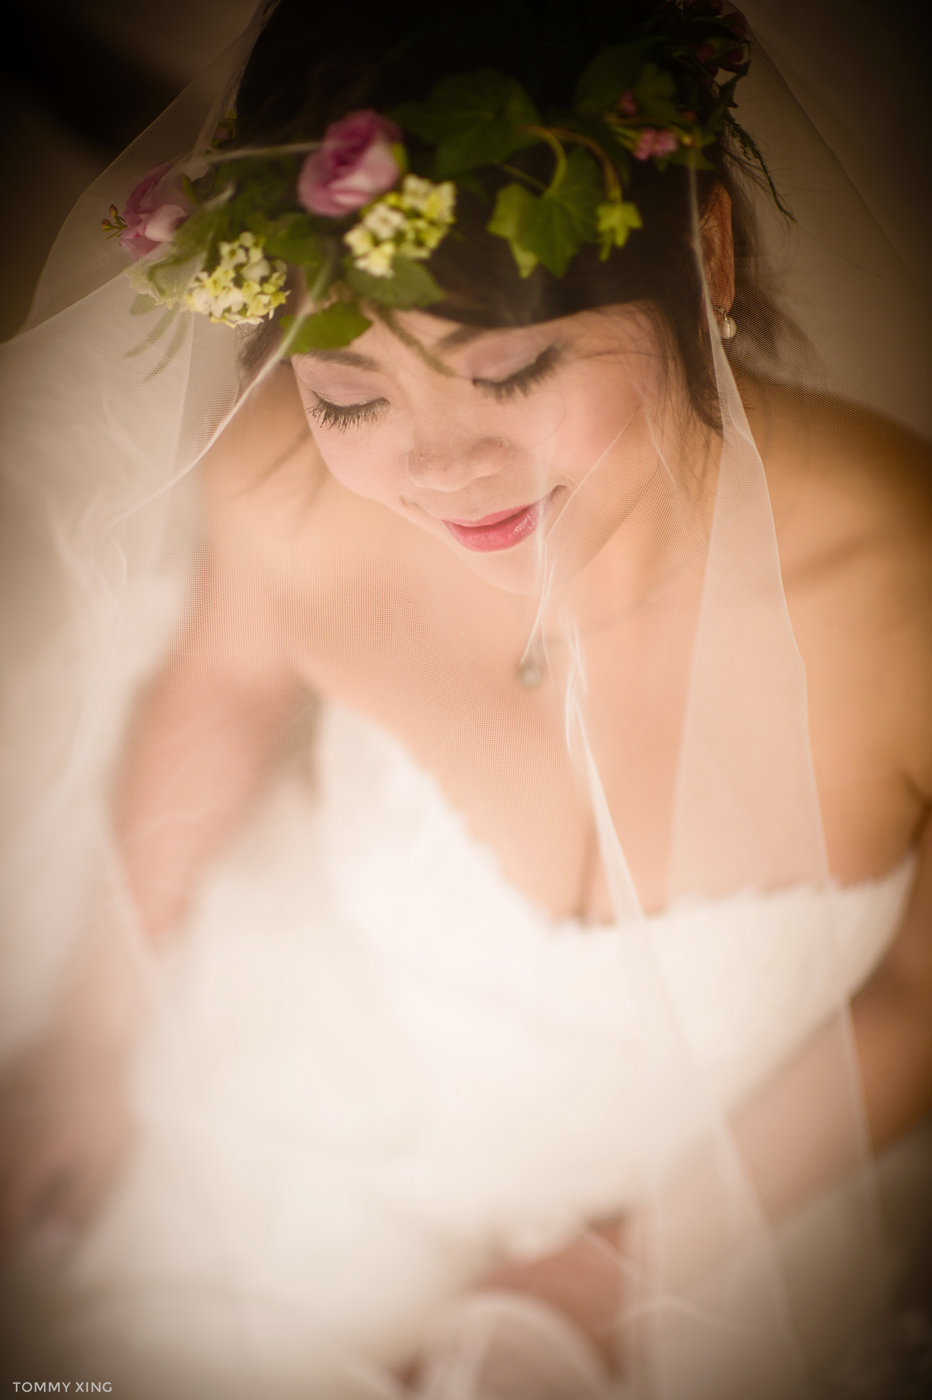 Seattle Wedding and pre wedding Los Angeles Tommy Xing Photography 西雅图洛杉矶旧金山婚礼婚纱照摄影师 040.jpg